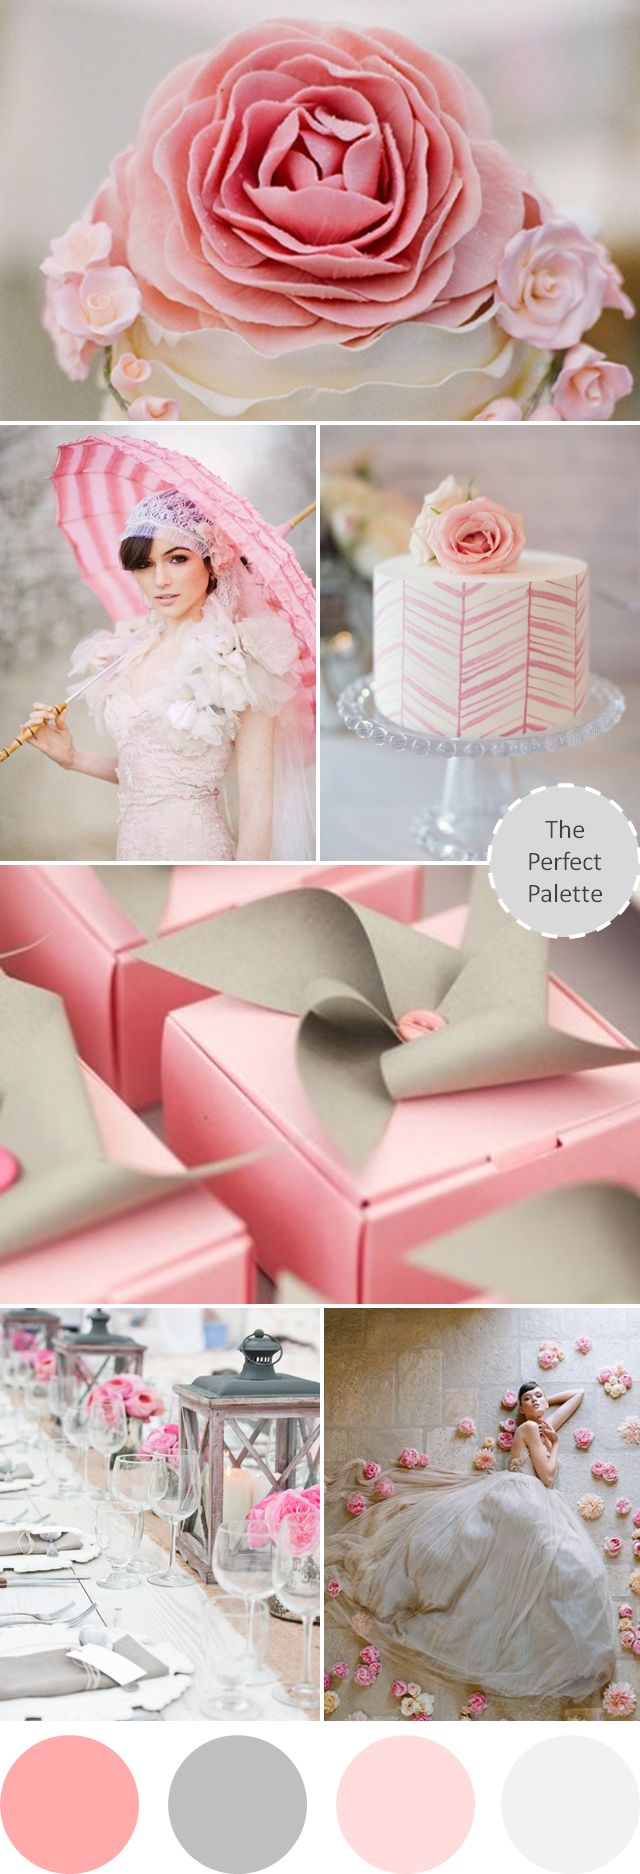 Dreamy 'I Do's: Shades of Pink + Gray http://www.theperfectpalette.com/2013/07/dreamy-i-dos-shades-of-pink-gray.html